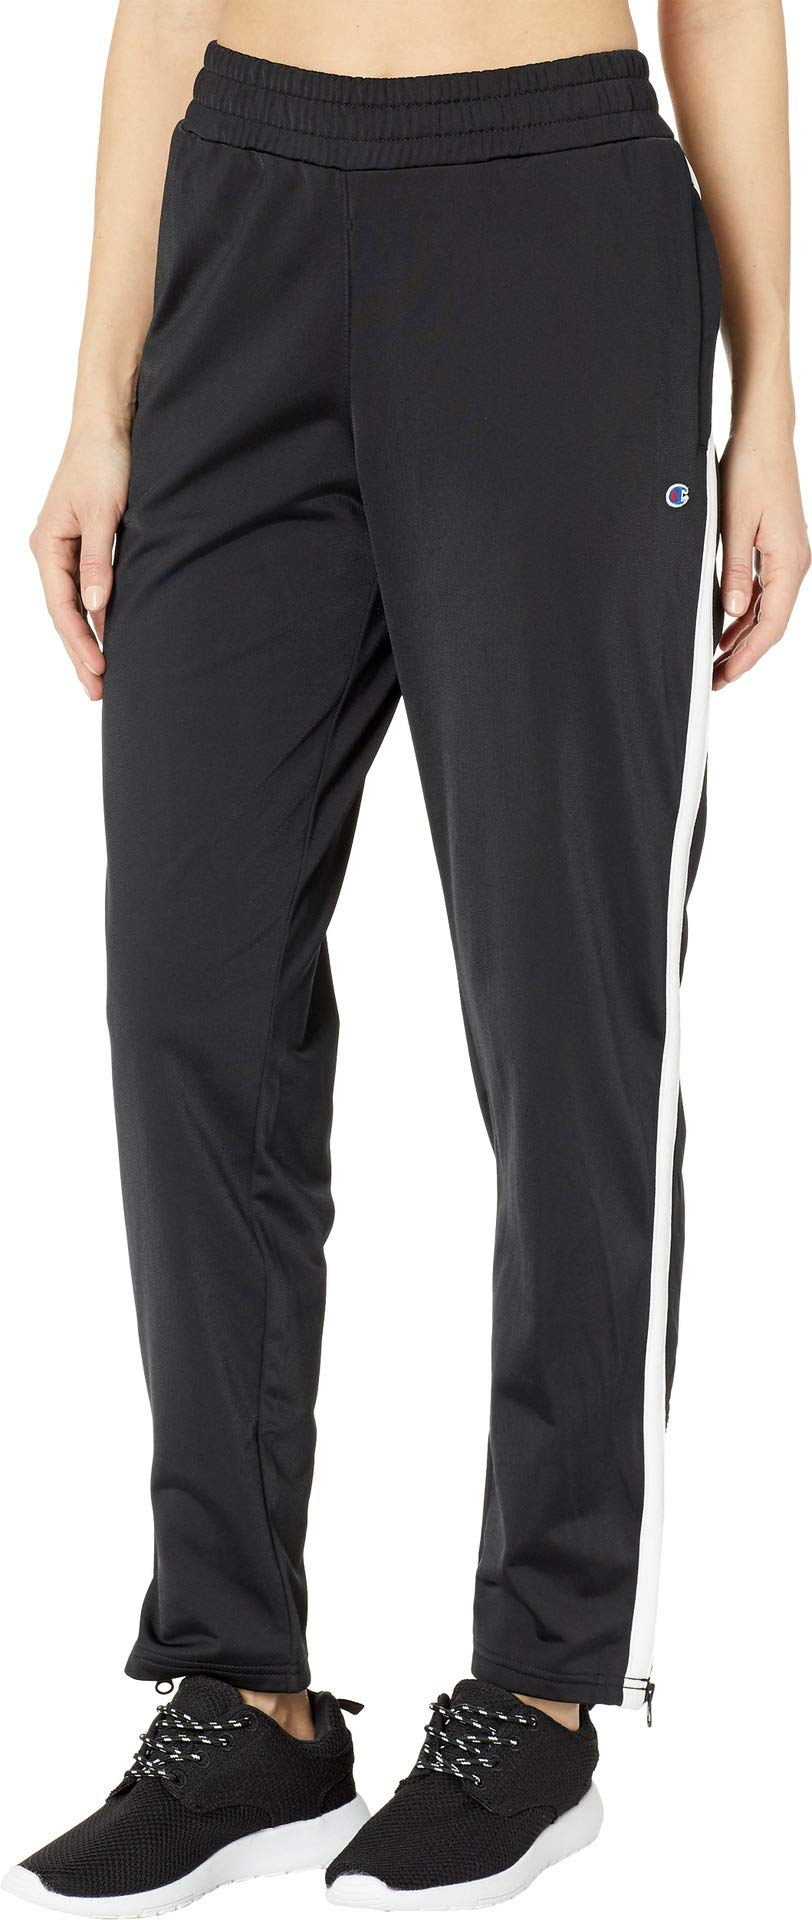 Champion Women's Heritage Warm Up Ankle Pant, Black/Oxford Grey Heather Large